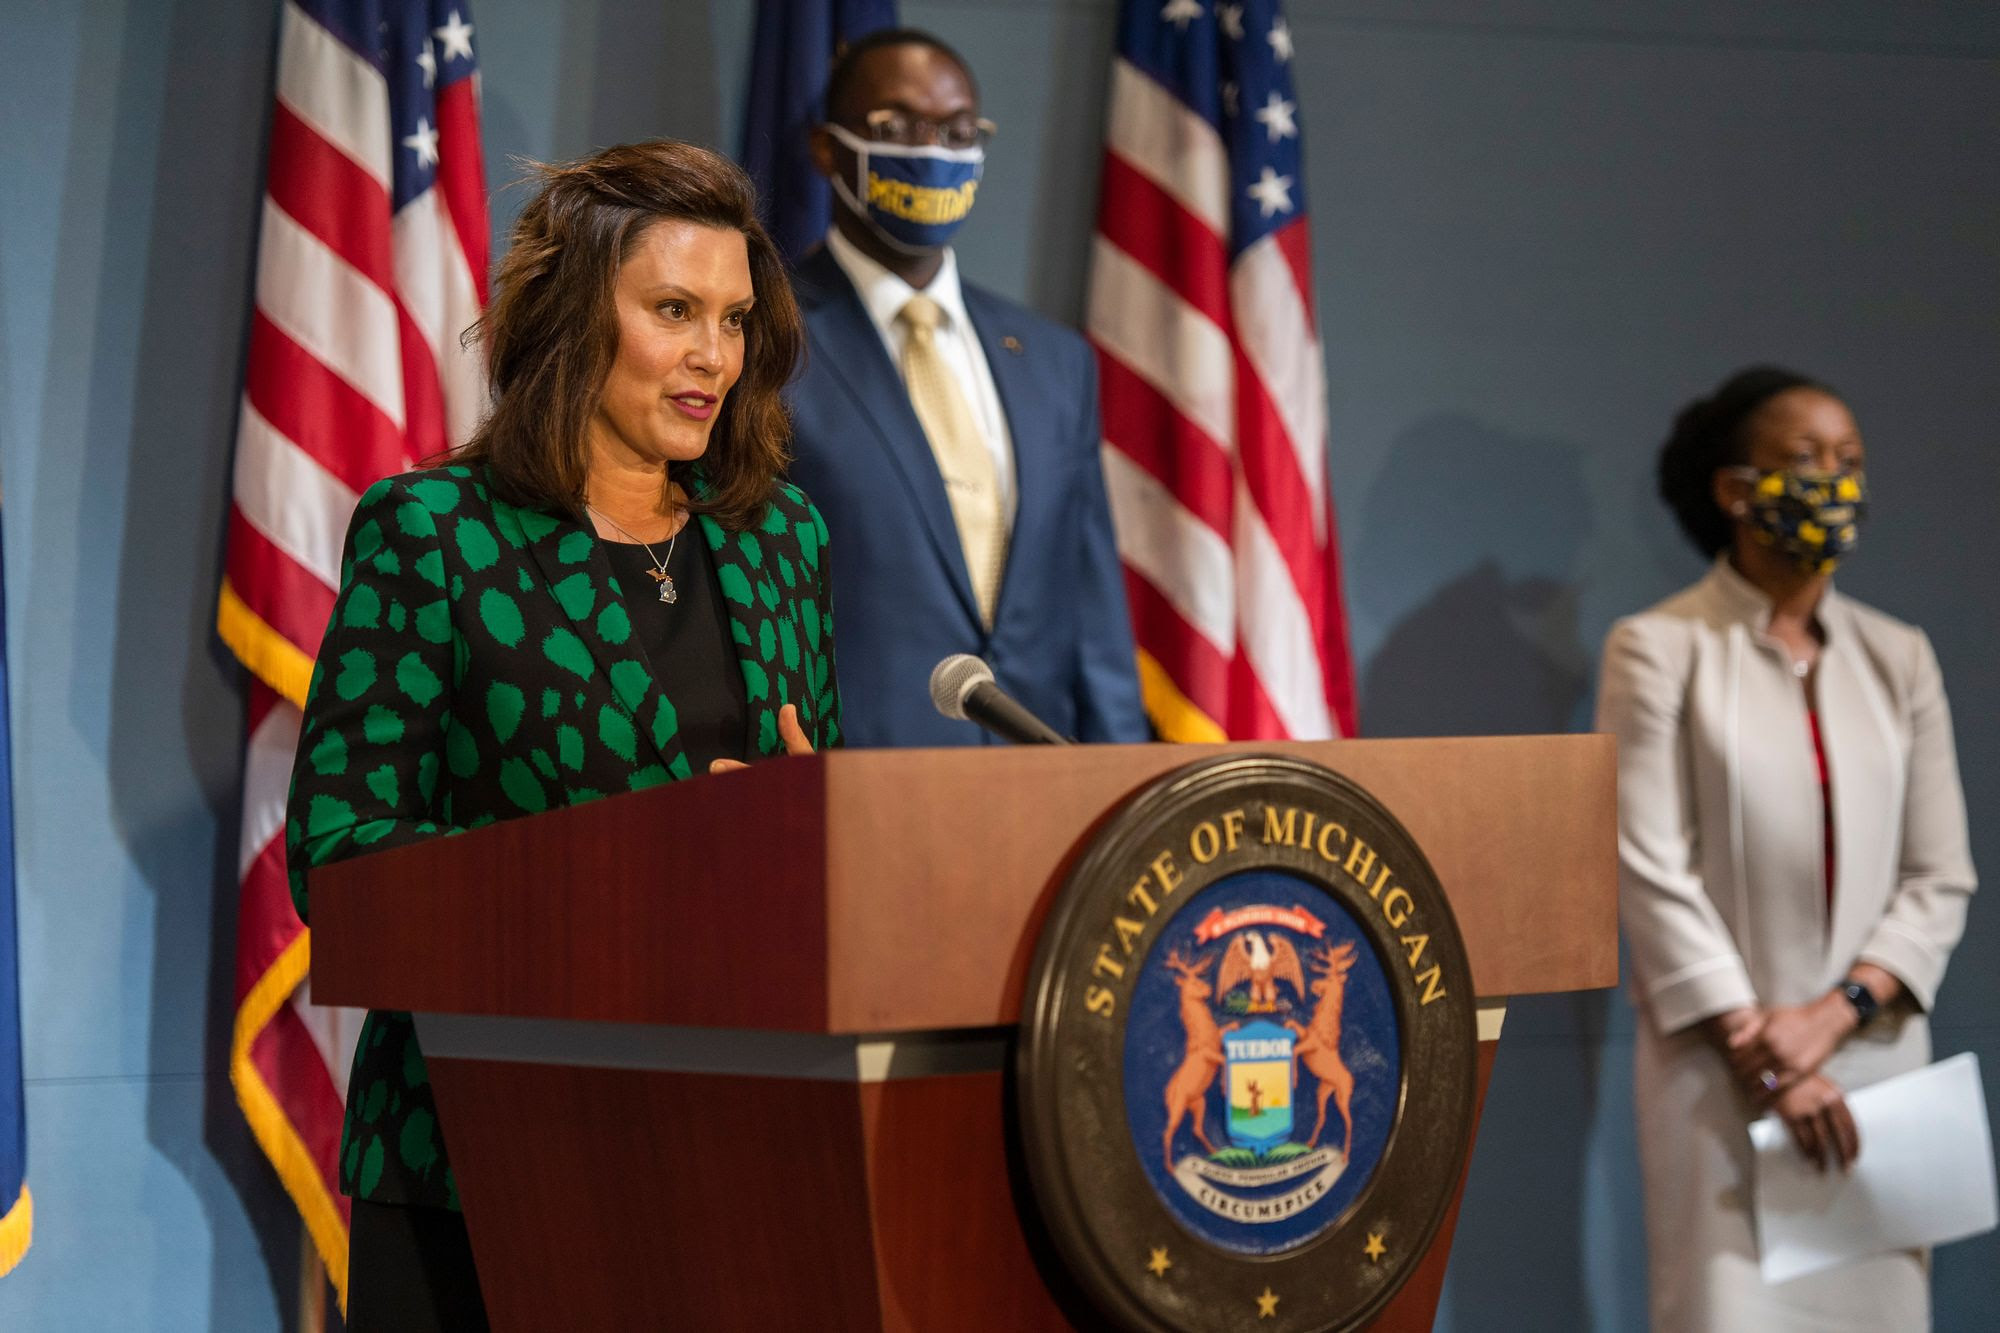 Whitmer Hosts Press Conference Promoting Masks